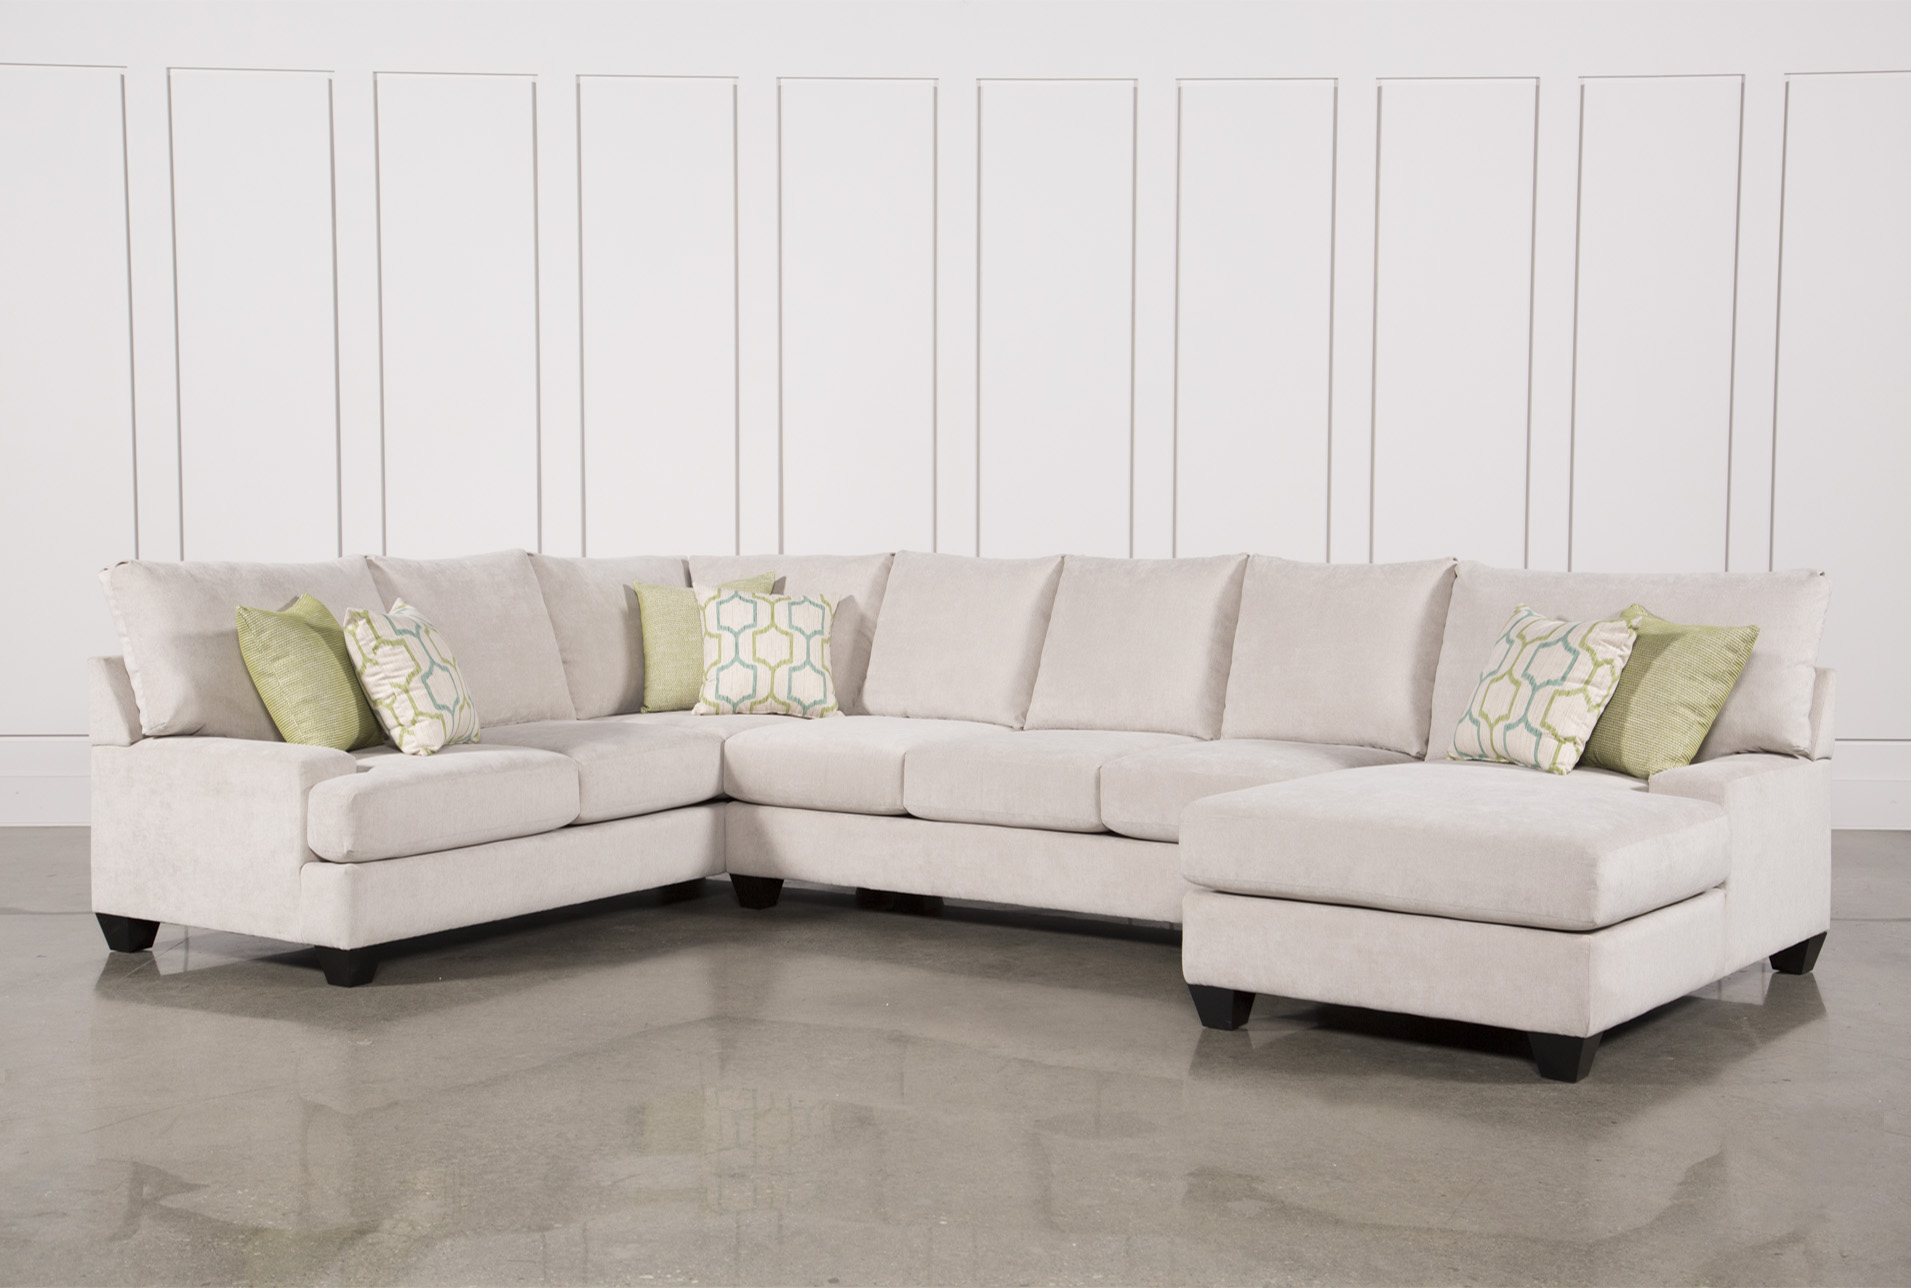 Beau Harper Foam 3 Piece Sectional W/Raf Chaise   360